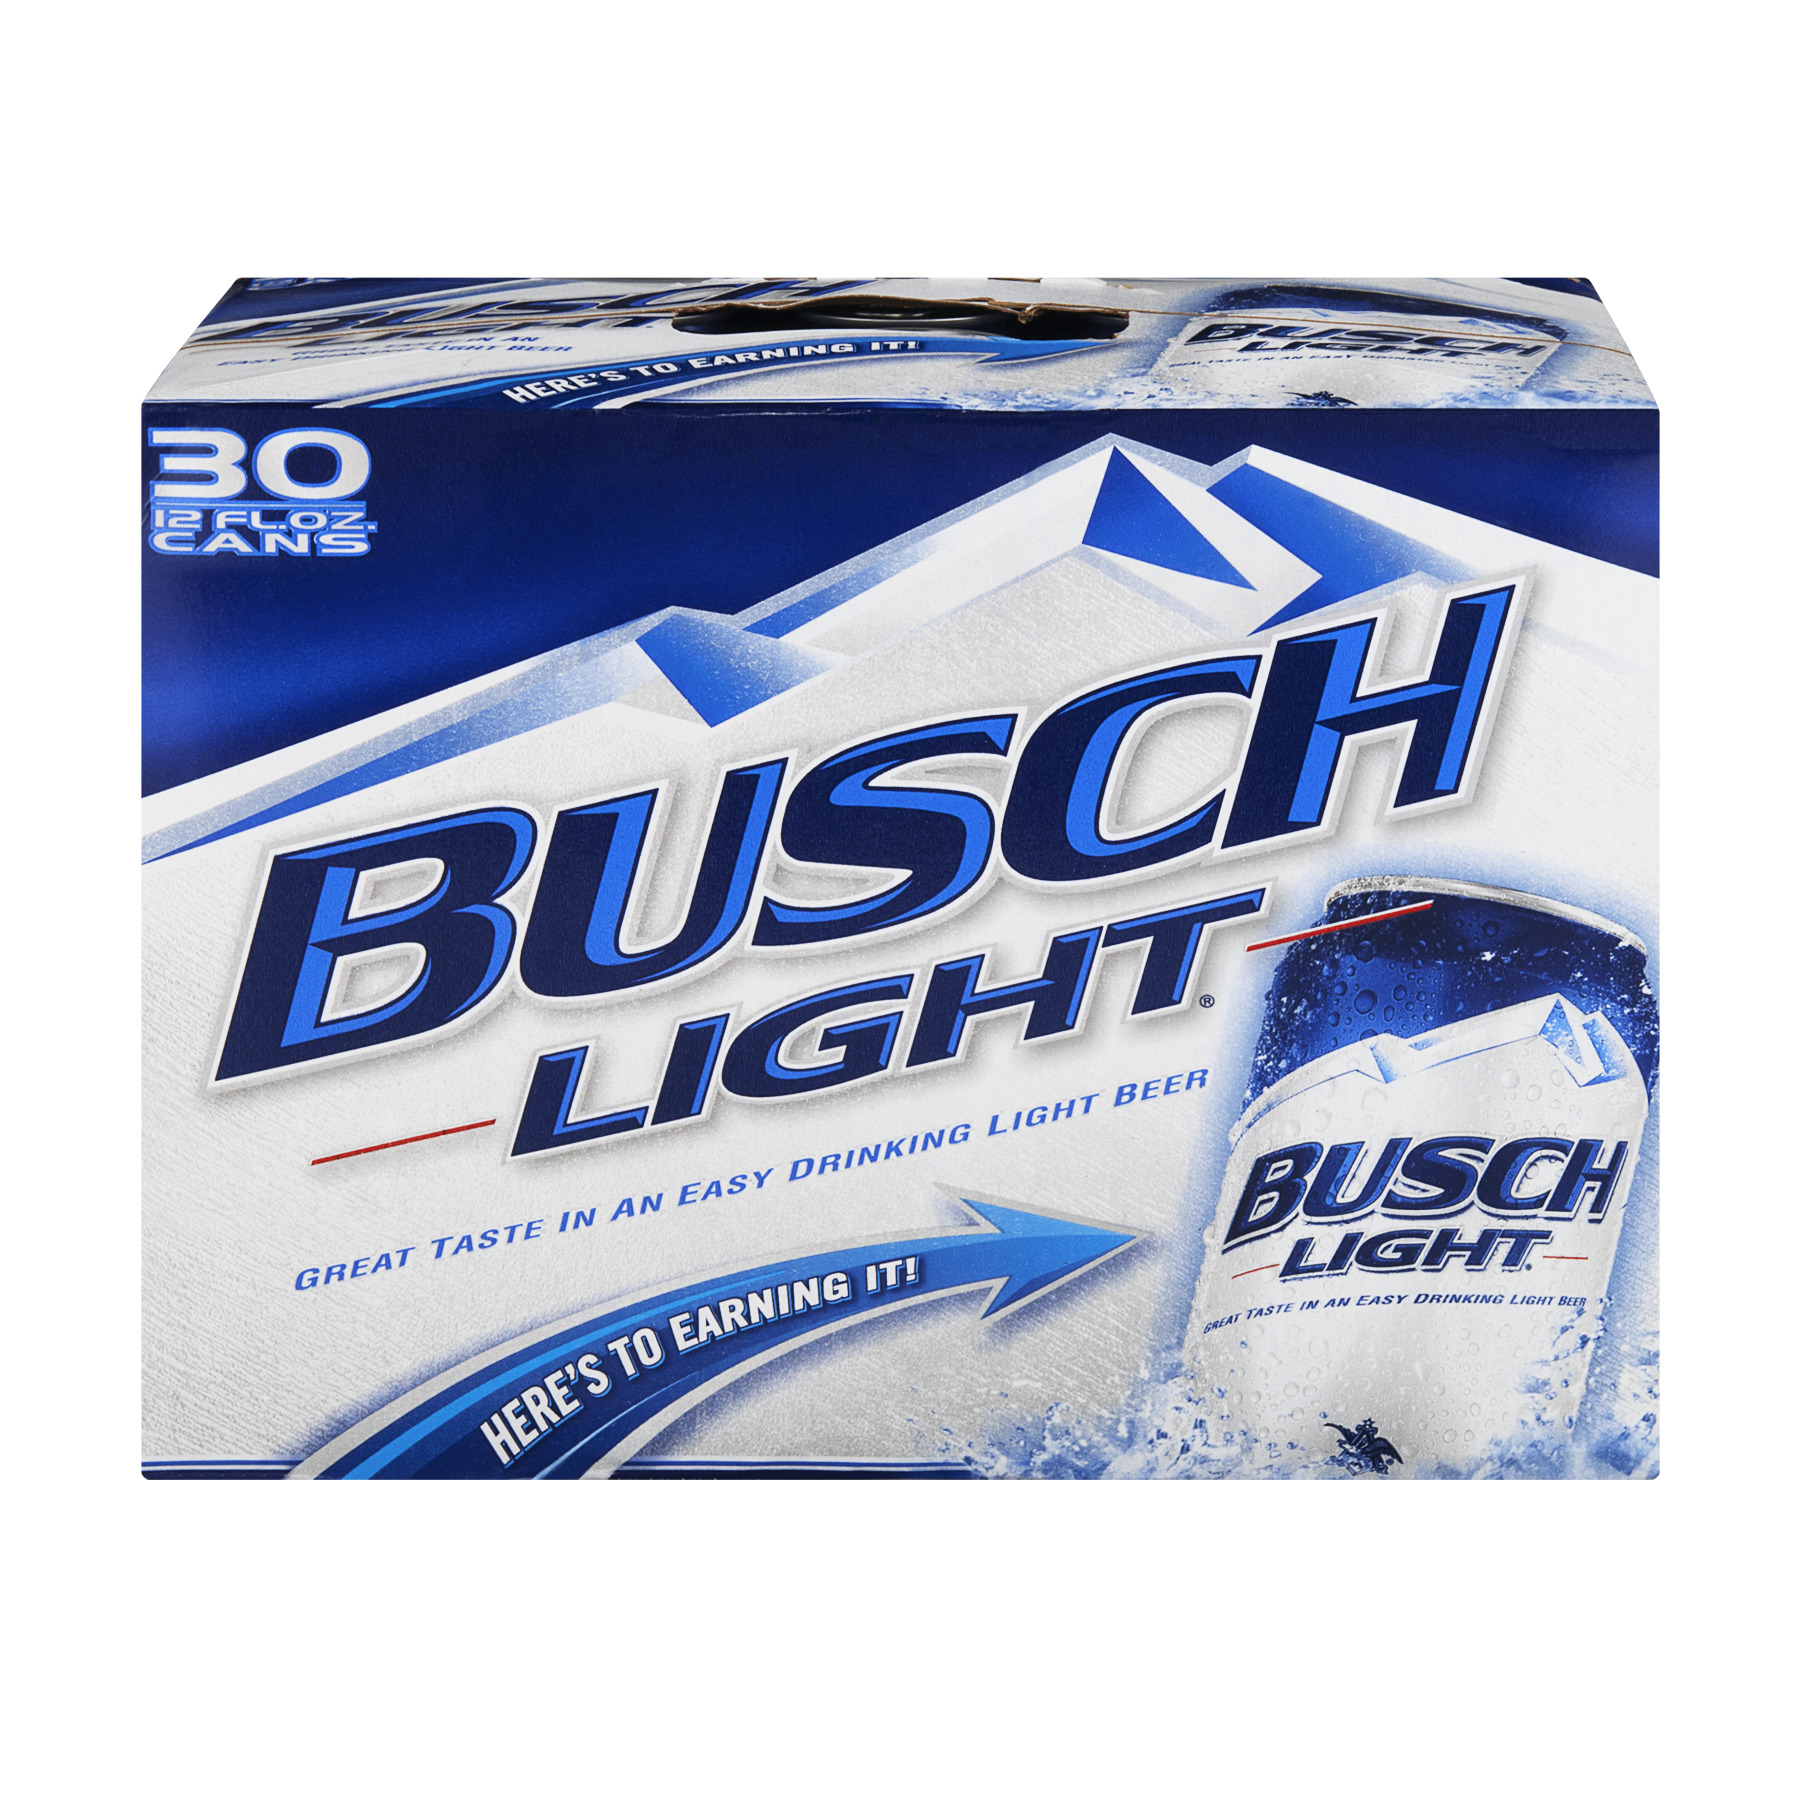 Busch Light Beer Cans - 30 CT12.0 FL OZ